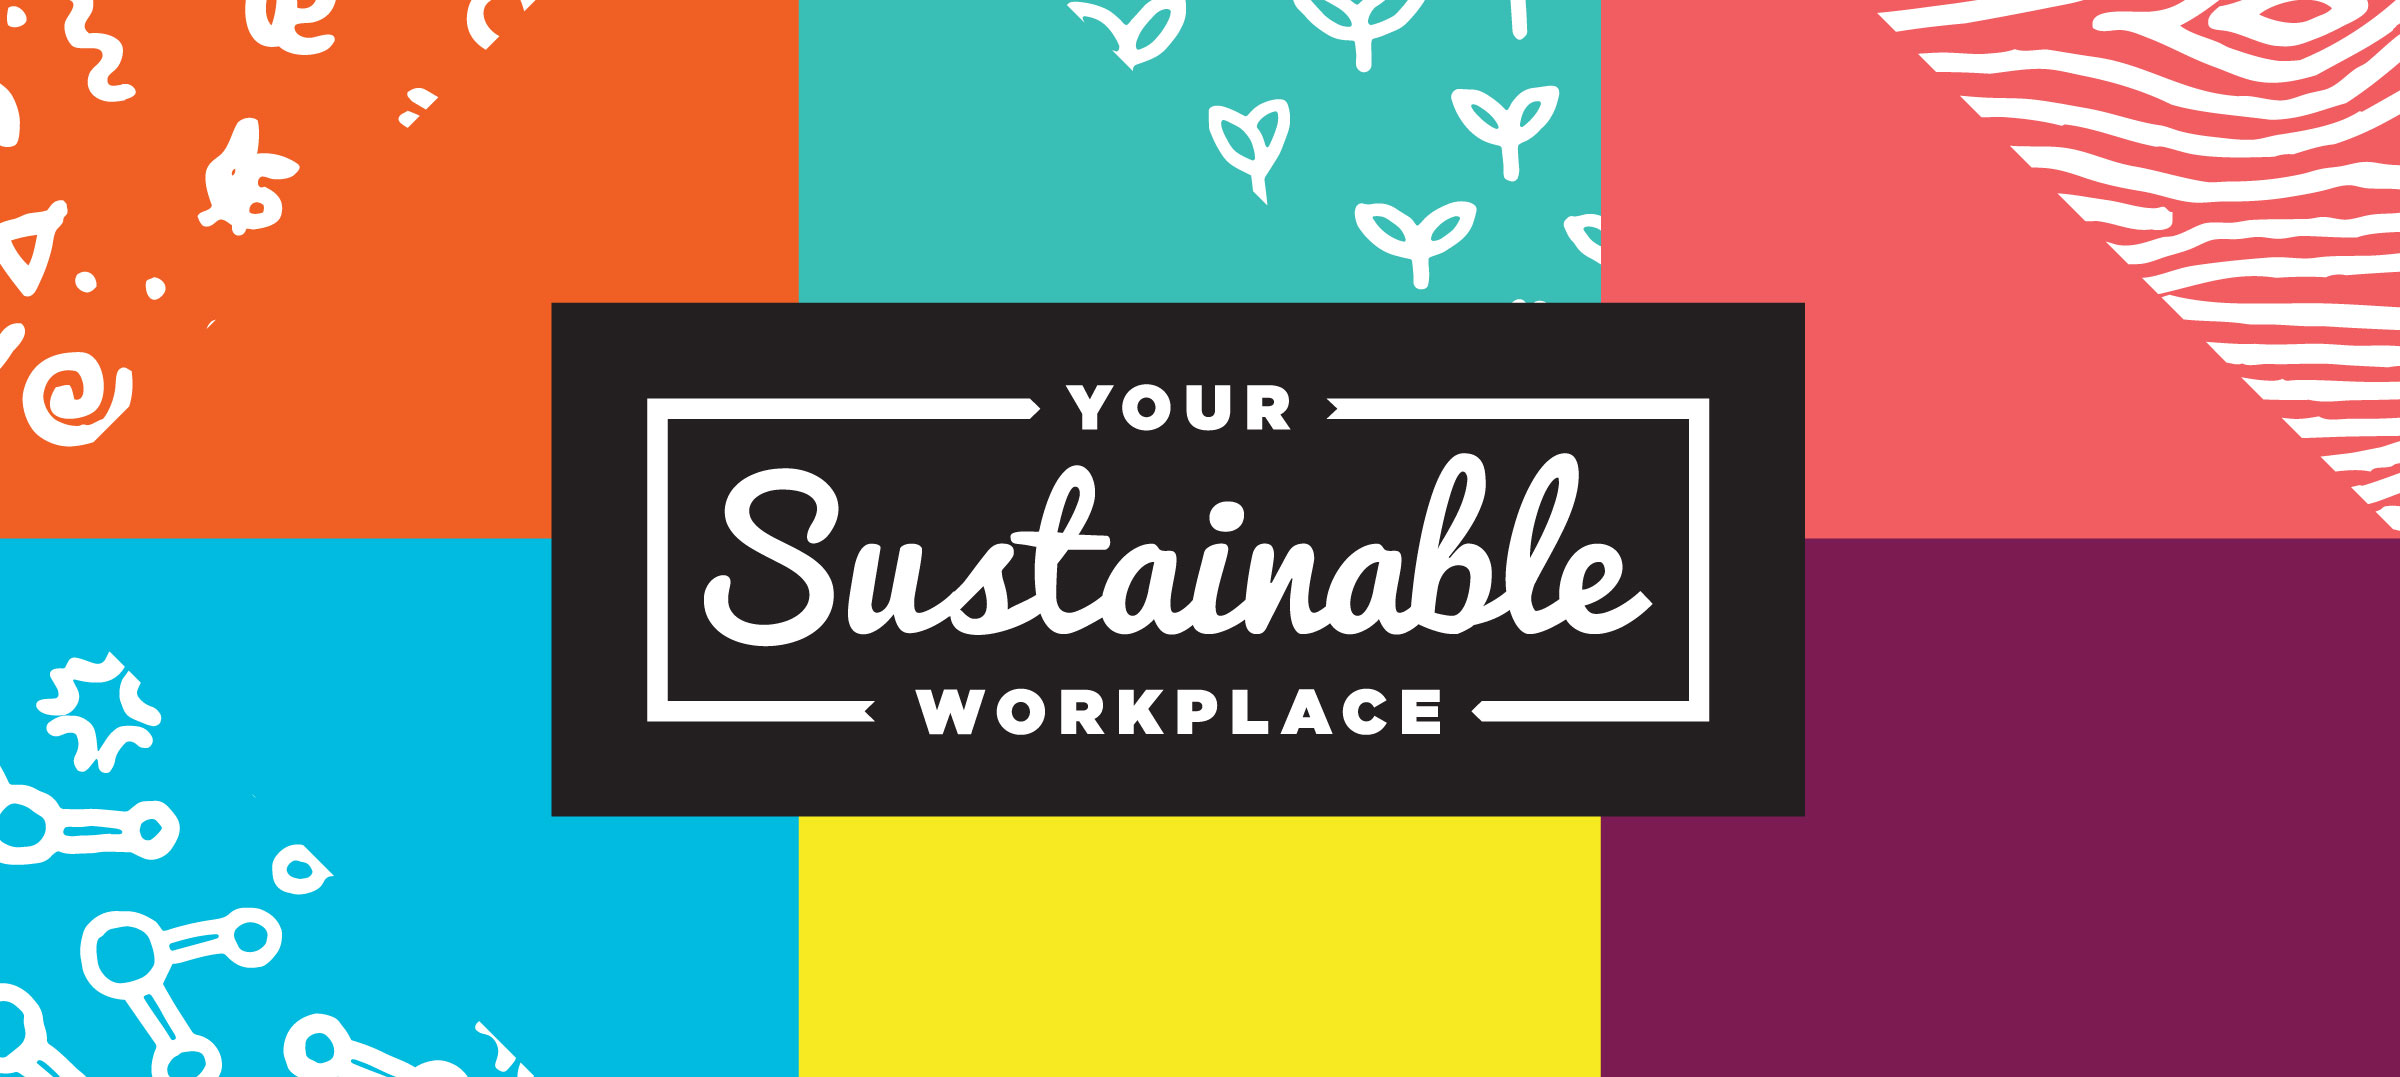 Your Sustainable Workplace Logo